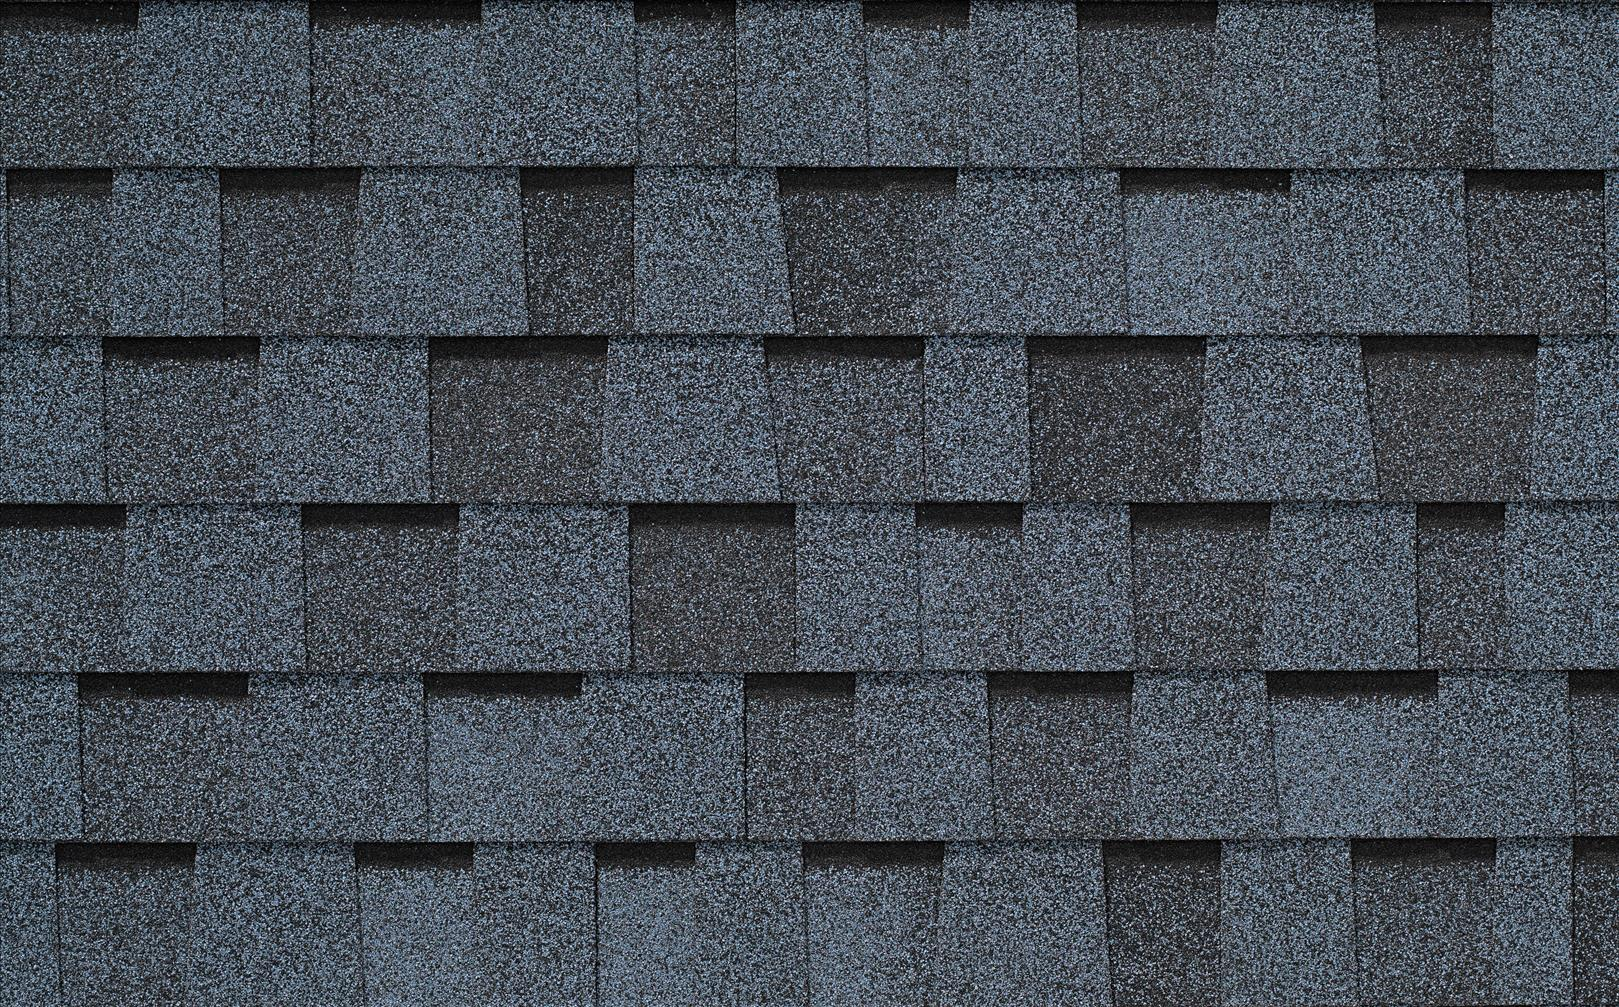 asphalt_shingle_114.jpg